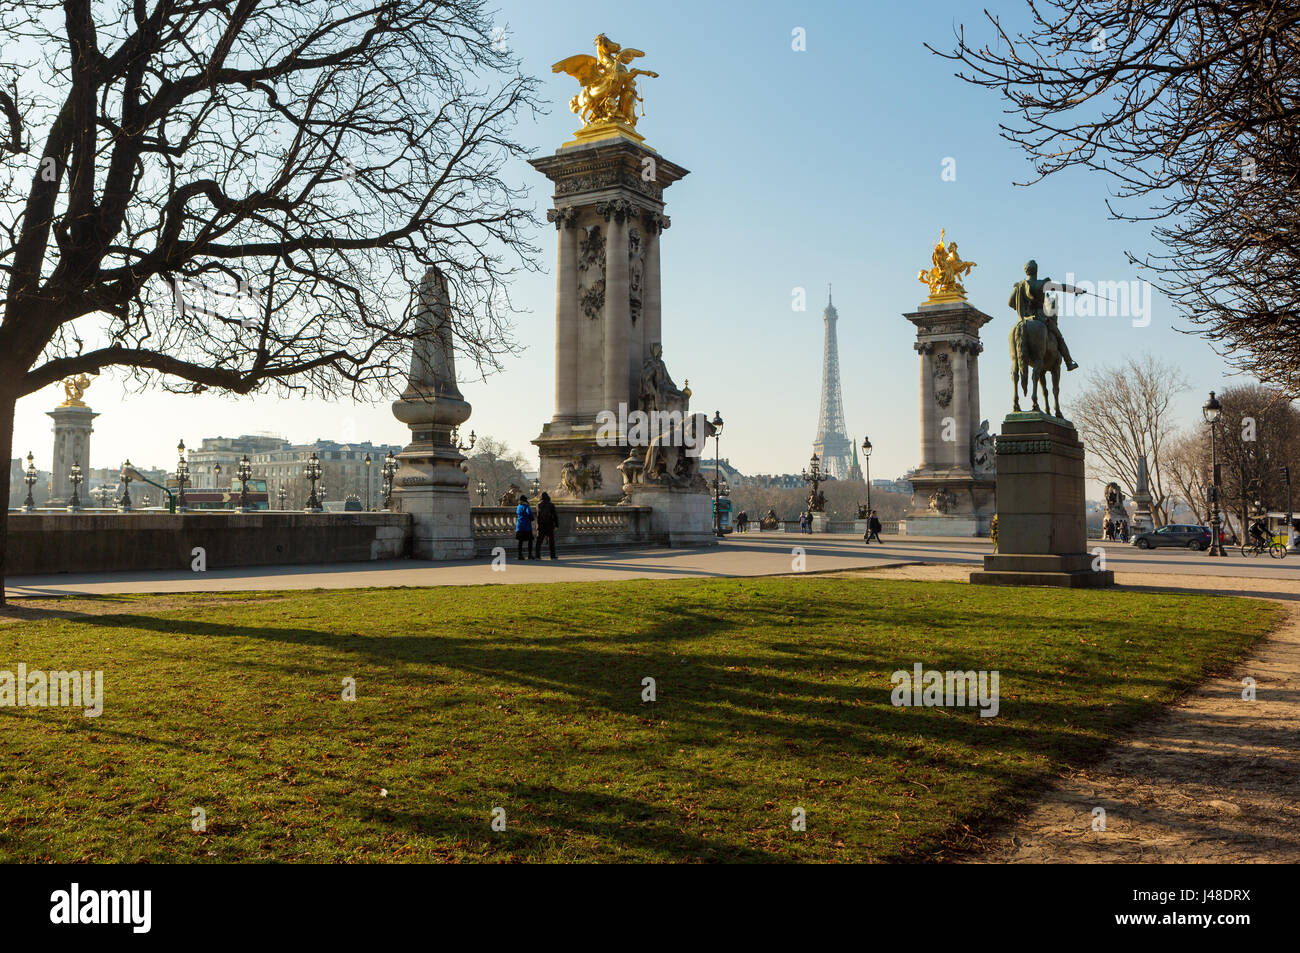 Eiffel tower (Tour Eiffel ) and  Pont Alexandre III  in a sunny day in winter. - Stock Image